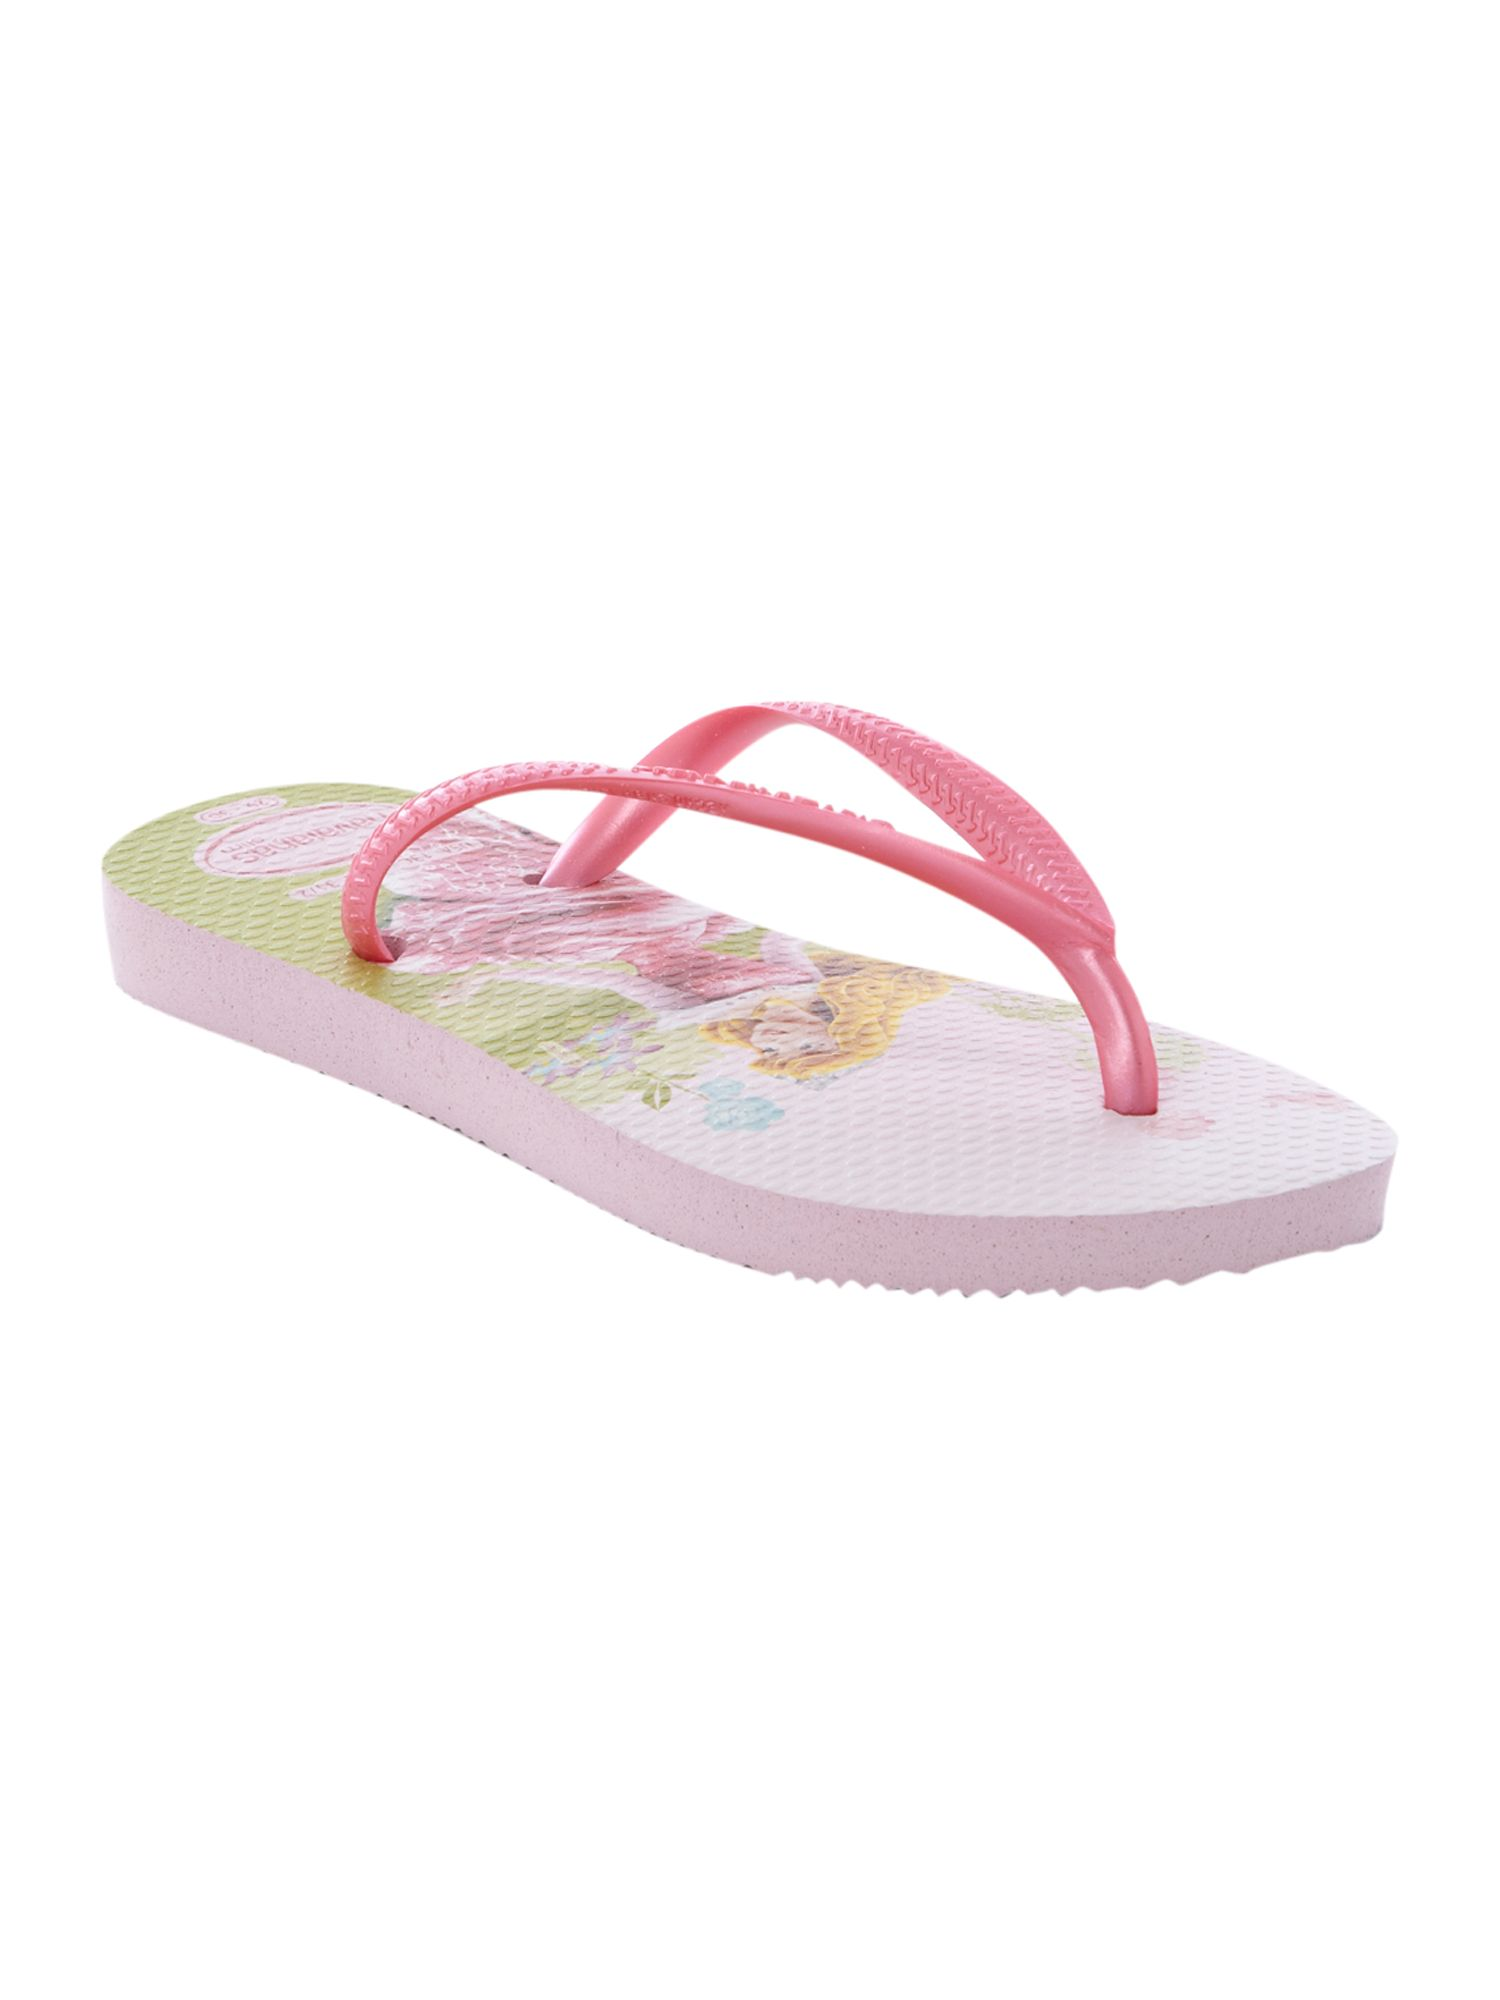 Kids disney princess flip flops